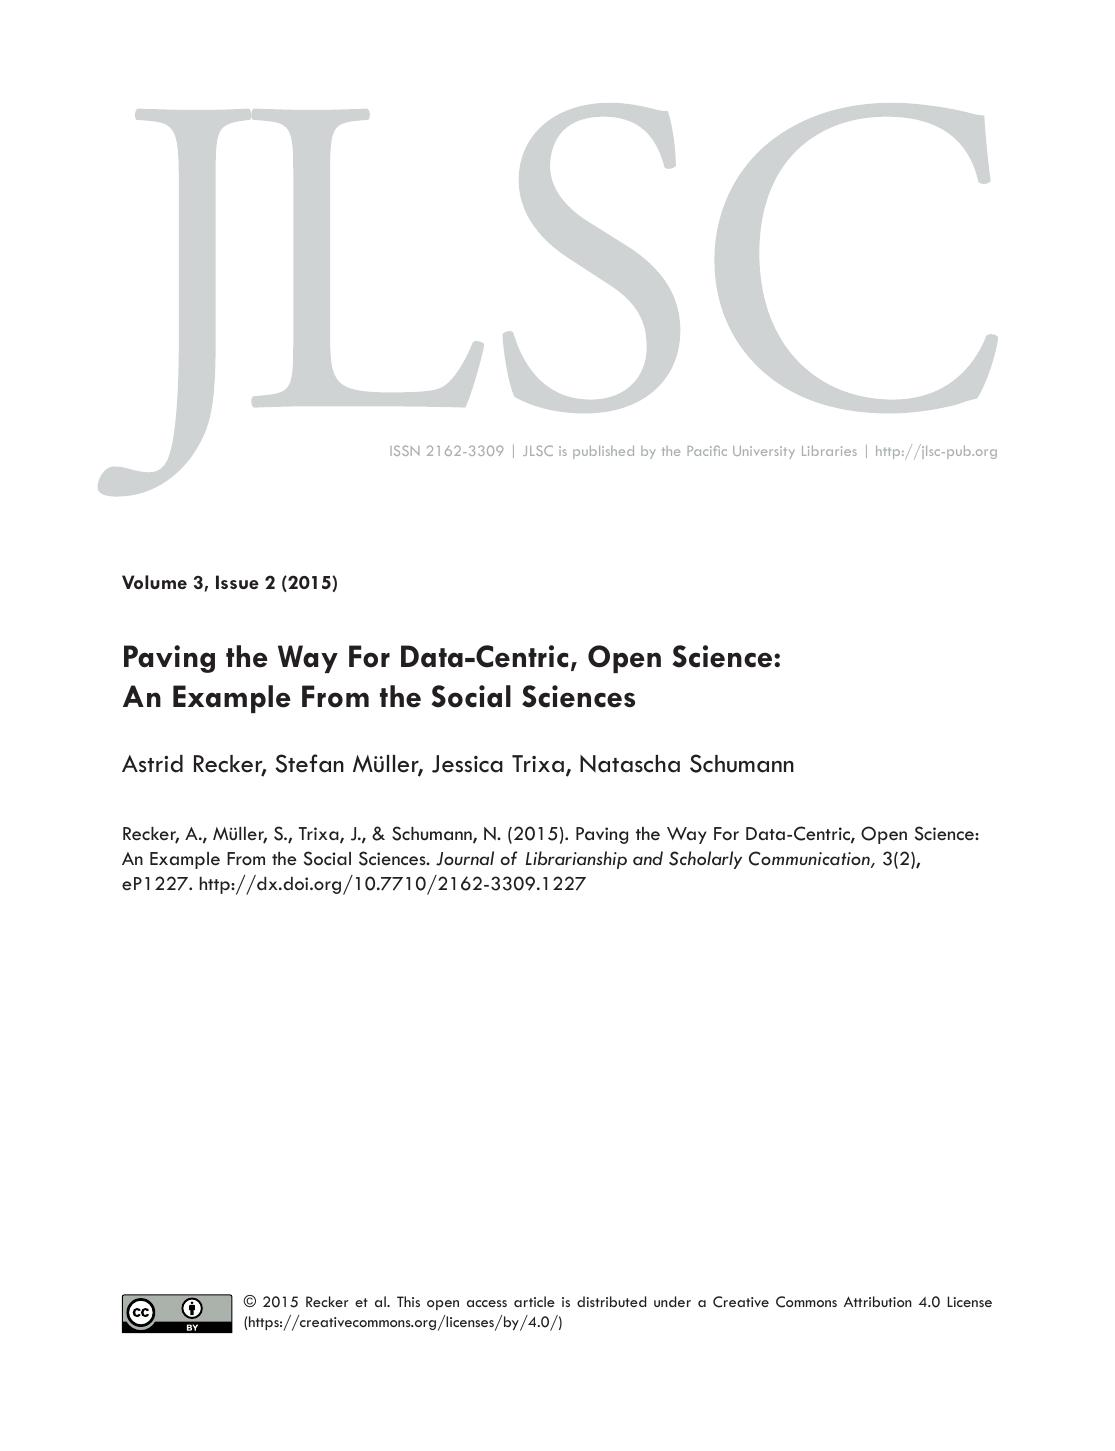 Paving the way for Data Centric, Open Science: An Example From the Social Sciences